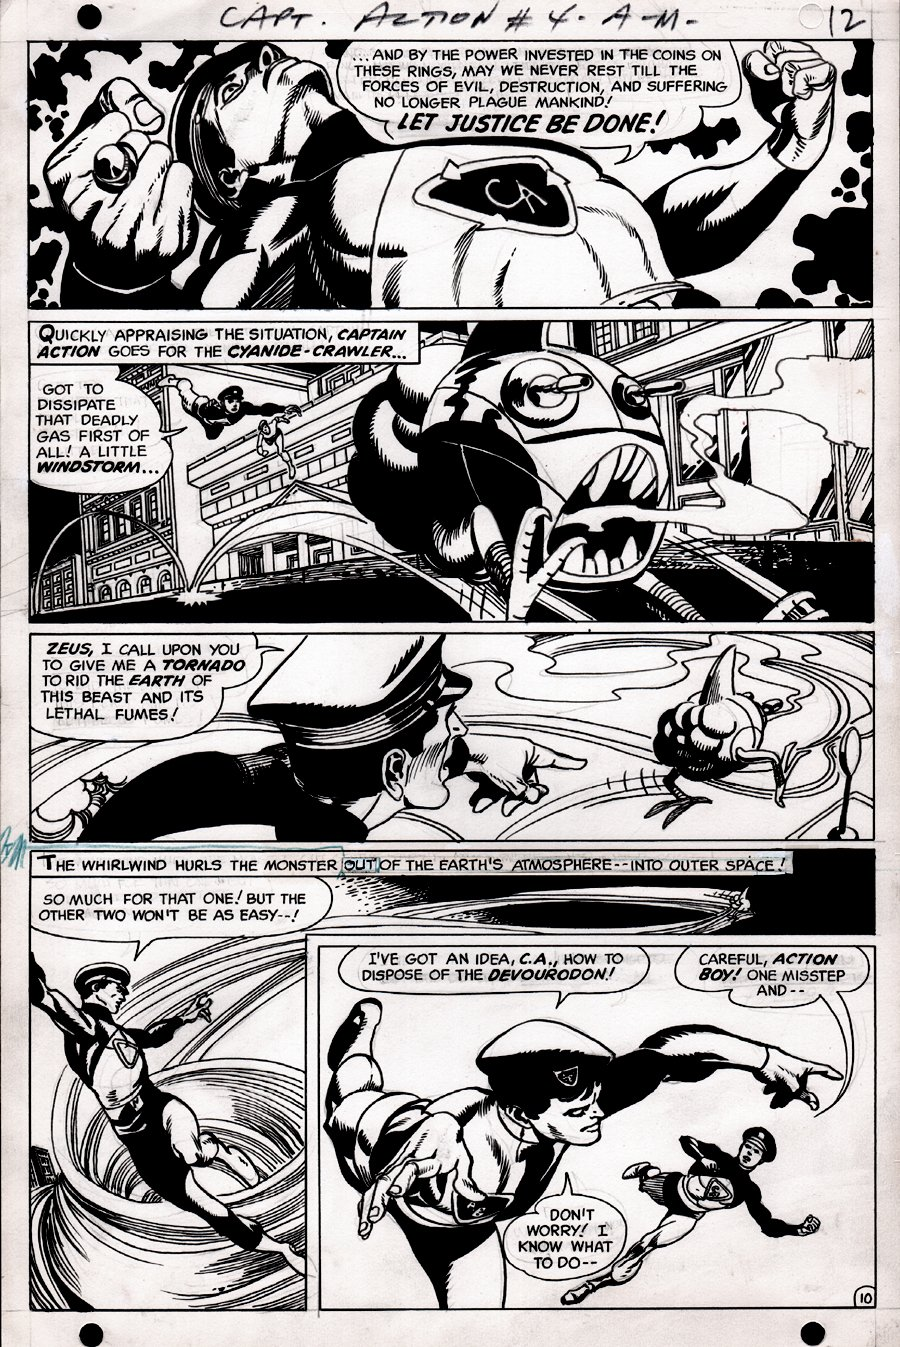 Captain Action #4 p 10 (OUR HERO IN EVERY PANEL!) 1968